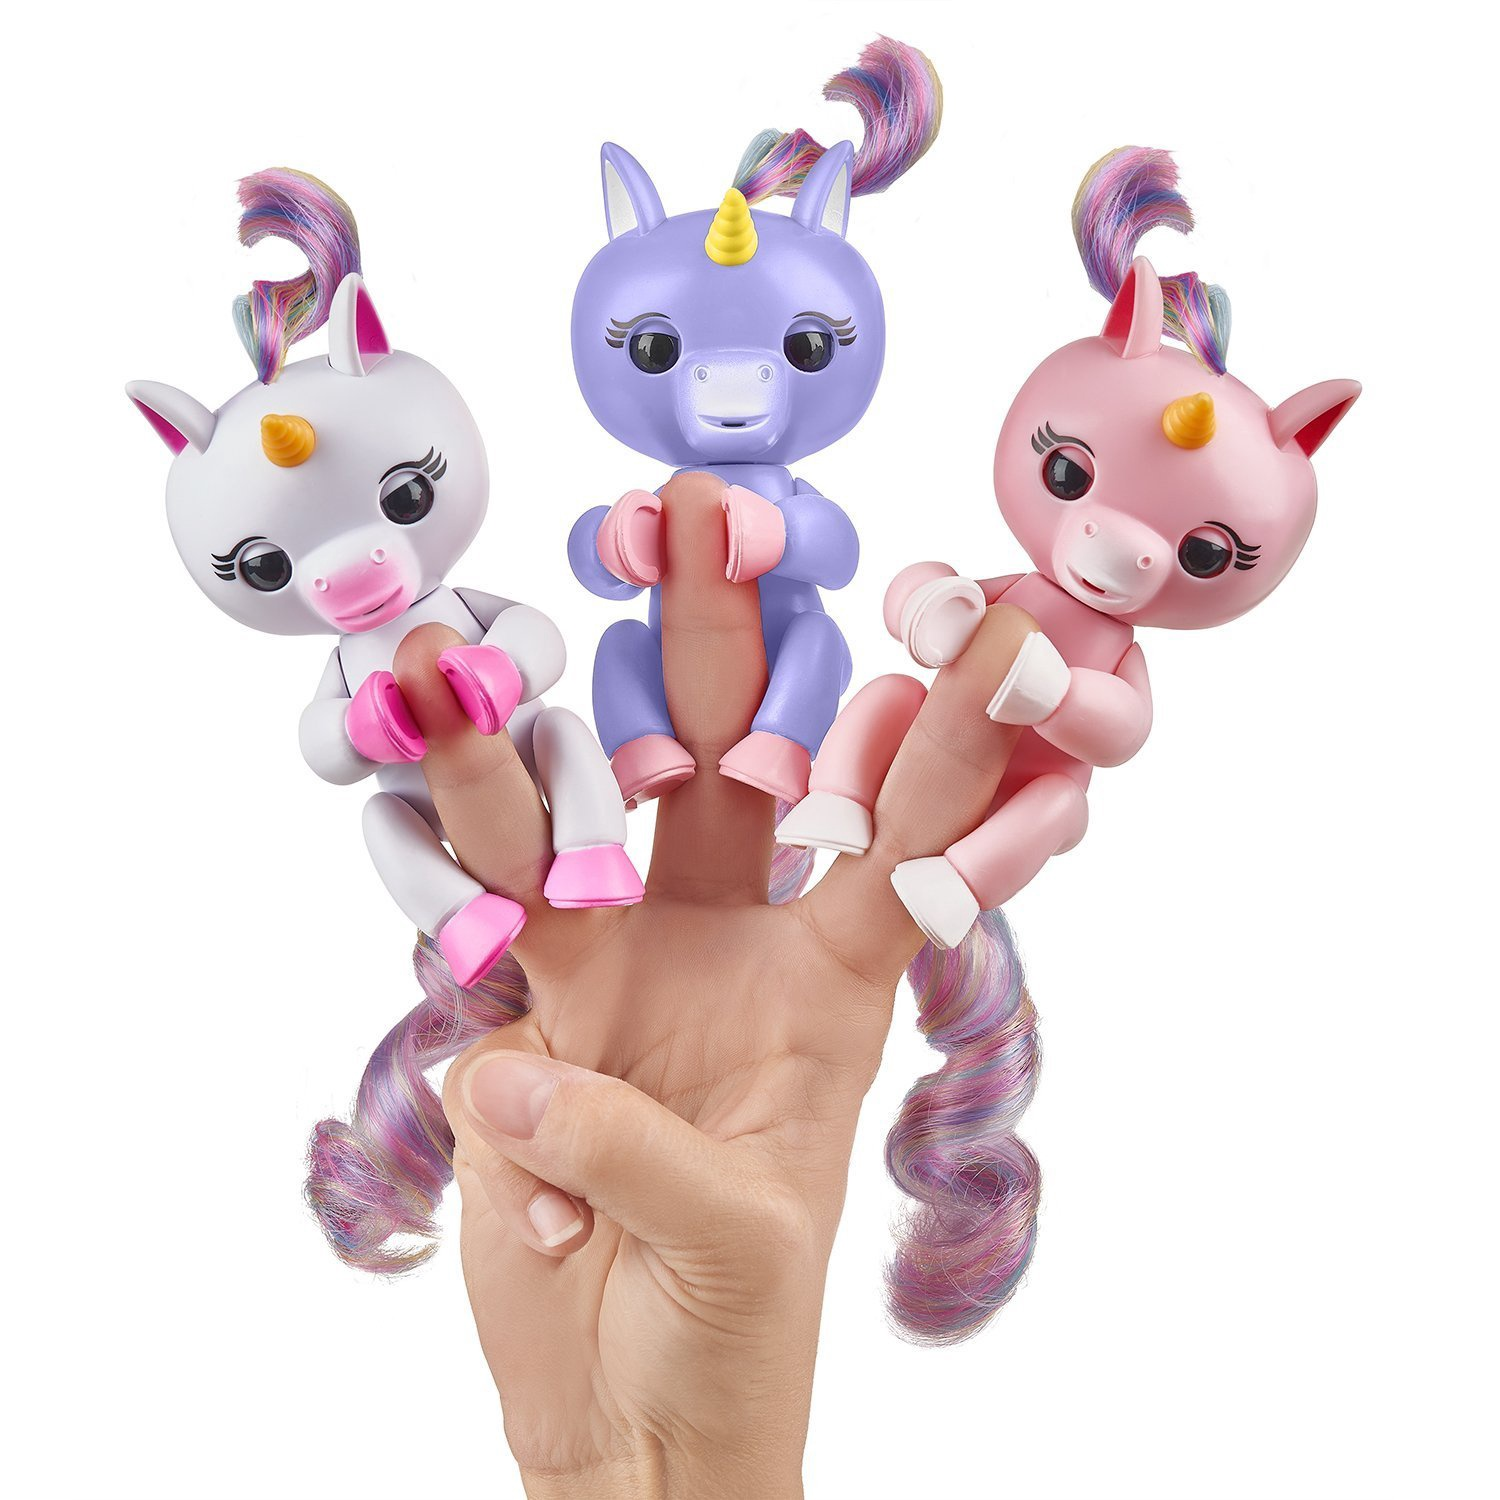 FINGERLINGS UNICORN PURPLE